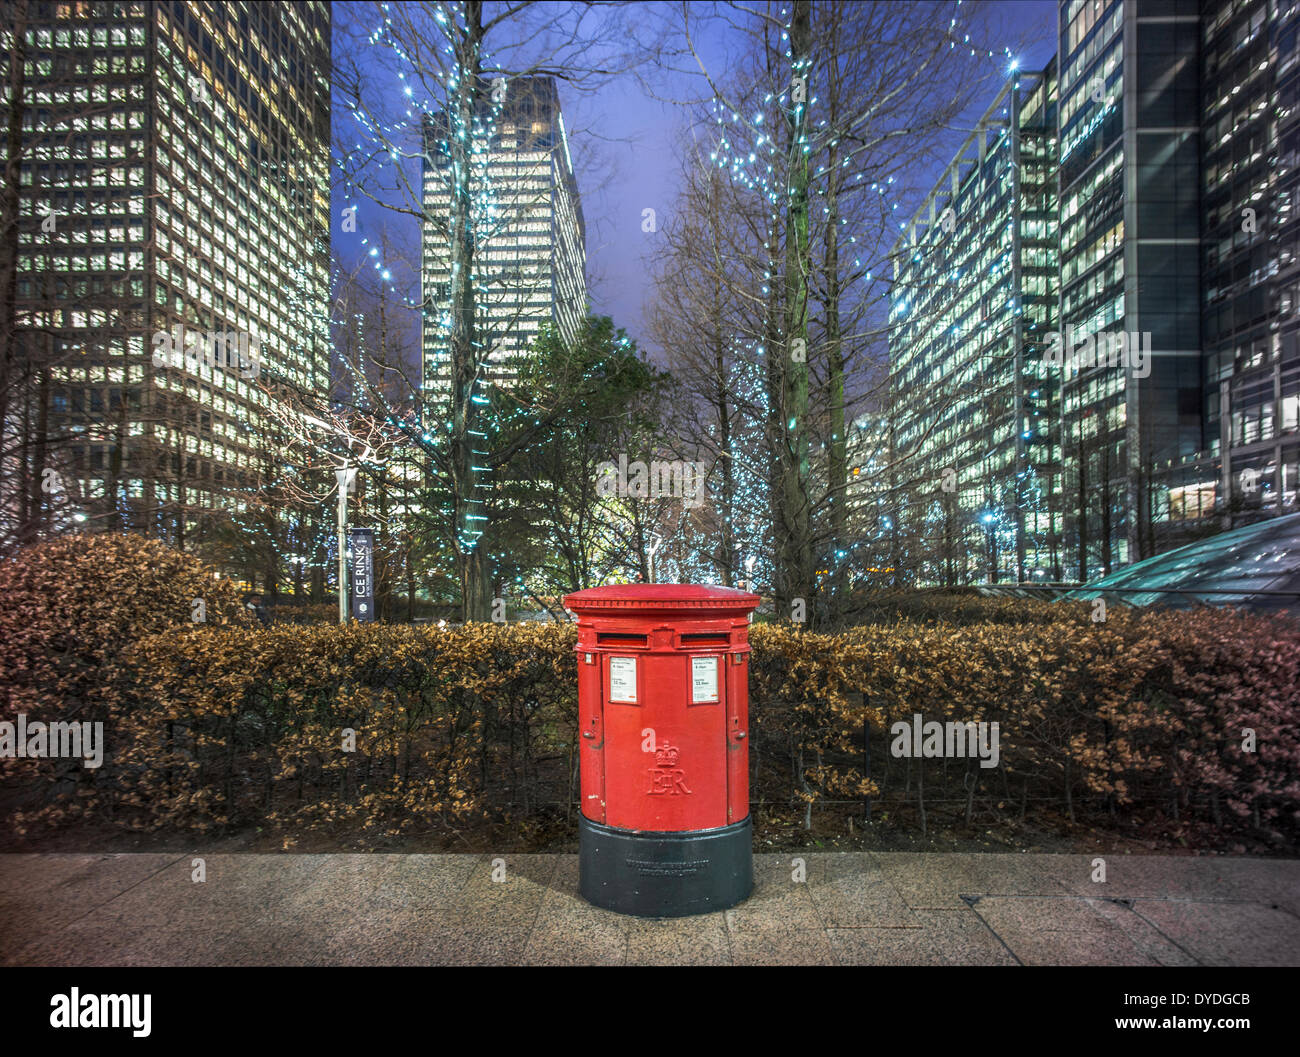 A post box at Canary Wharf. - Stock Image